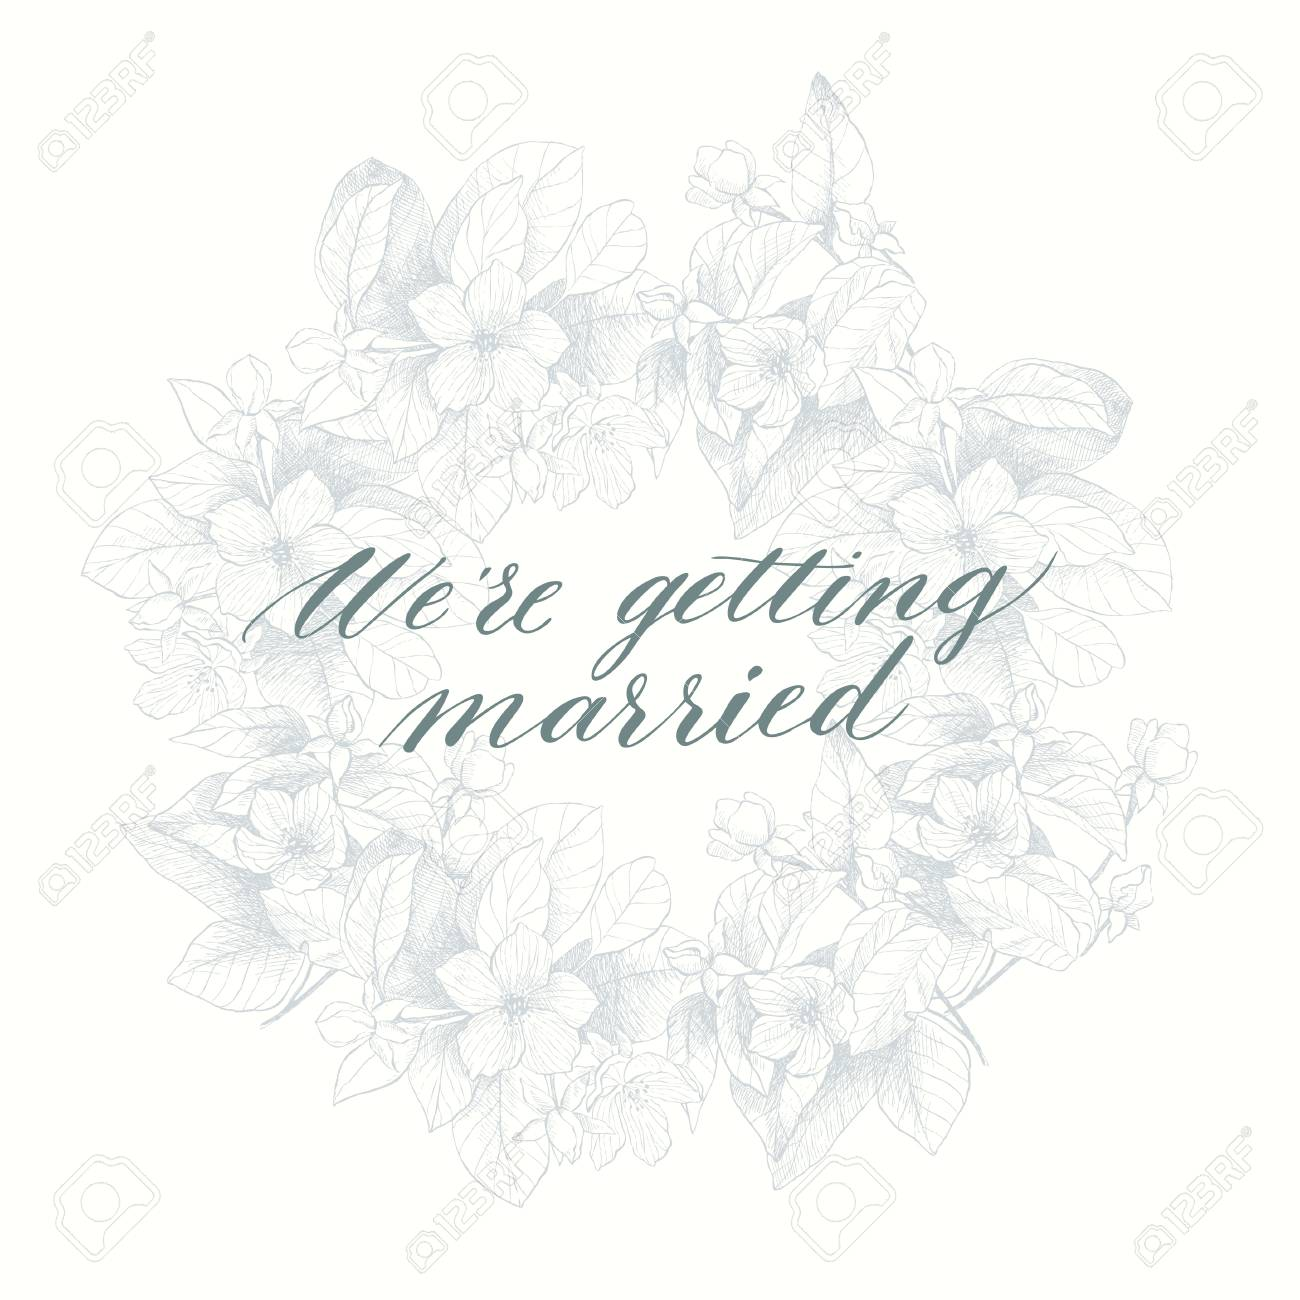 We're getting married phrase